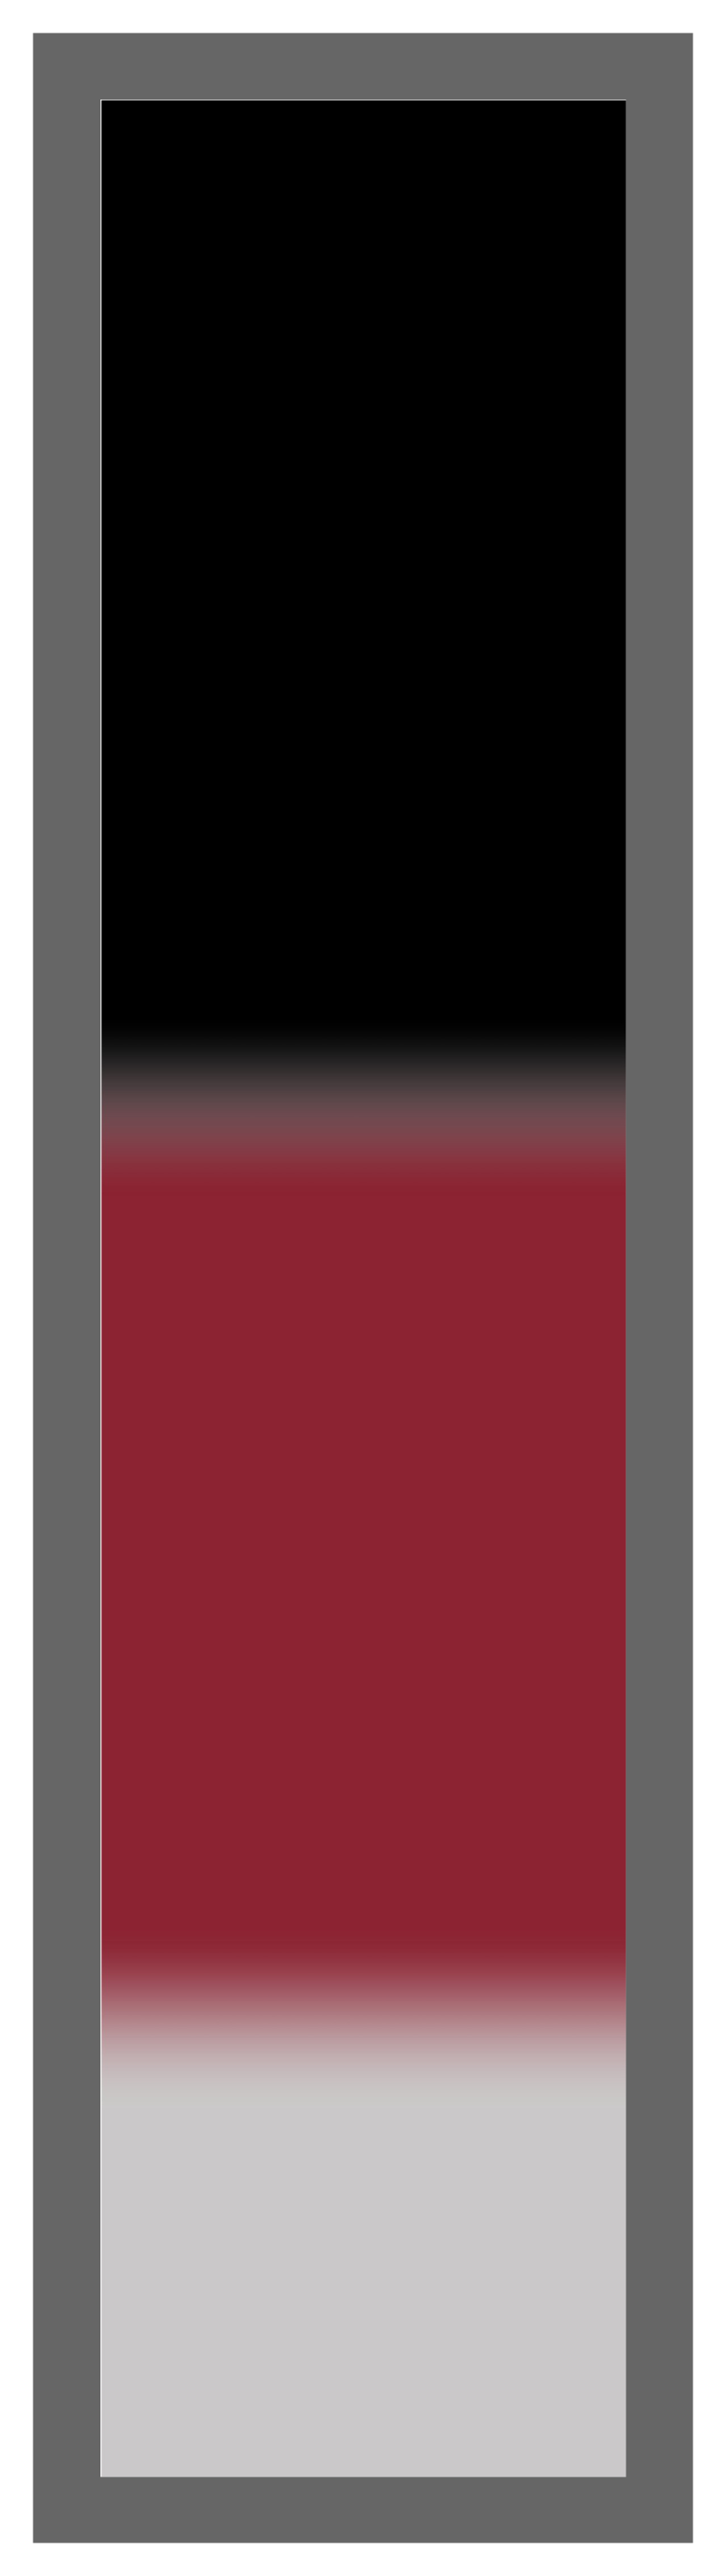 Black-Burgundy-Silver Ombre